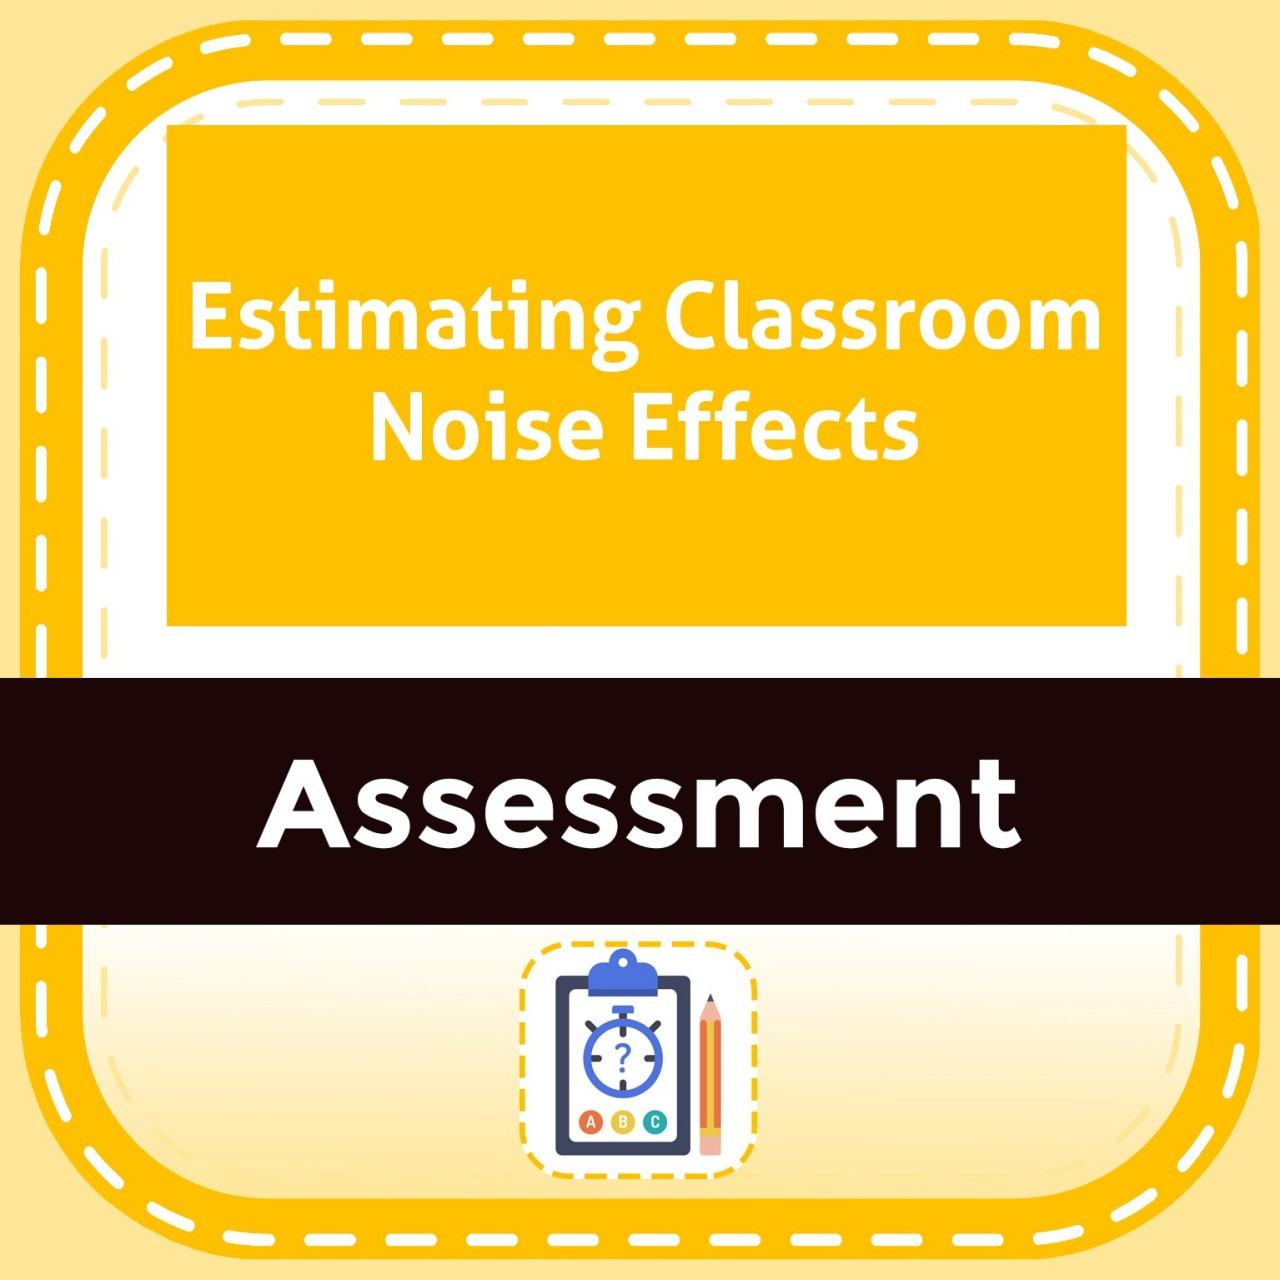 Estimating Classroom Noise Effects